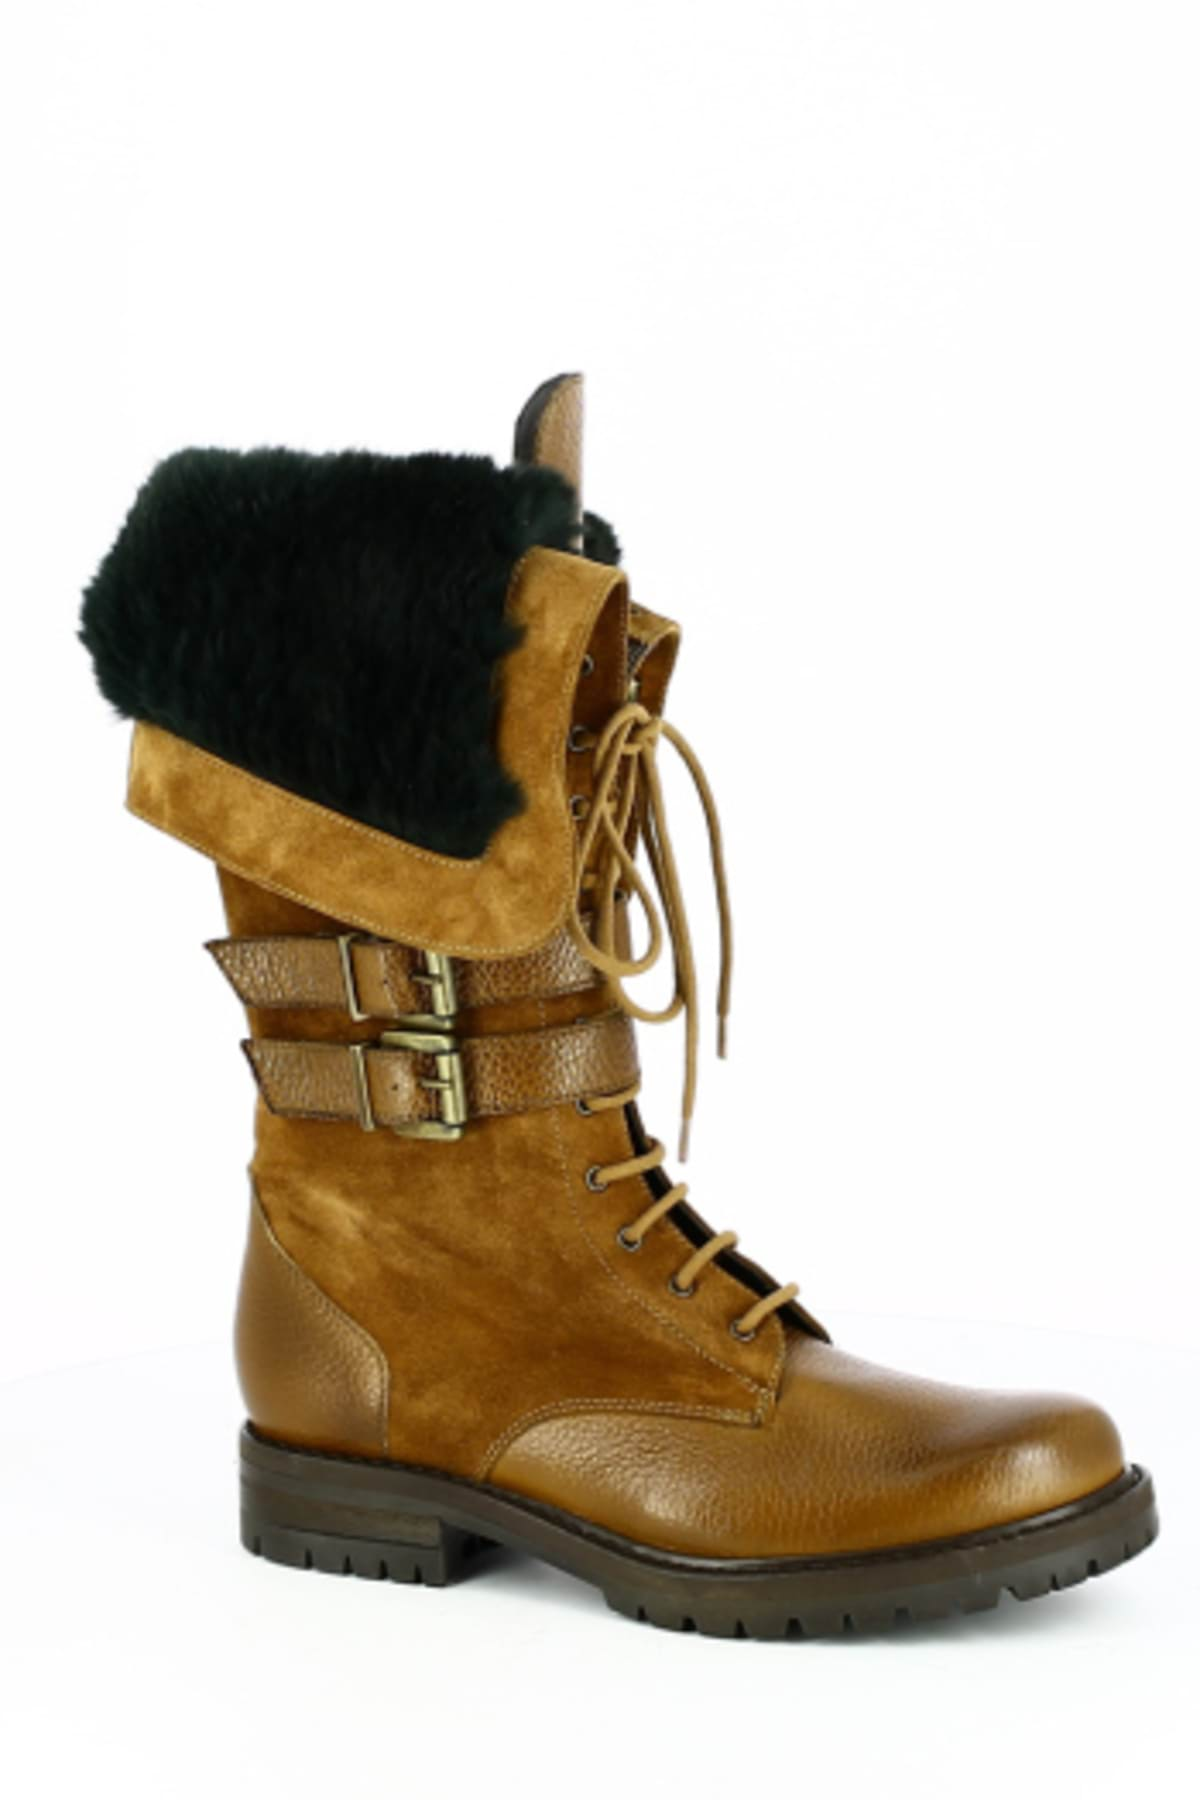 mr-mrs-italy-shoe-collection-6